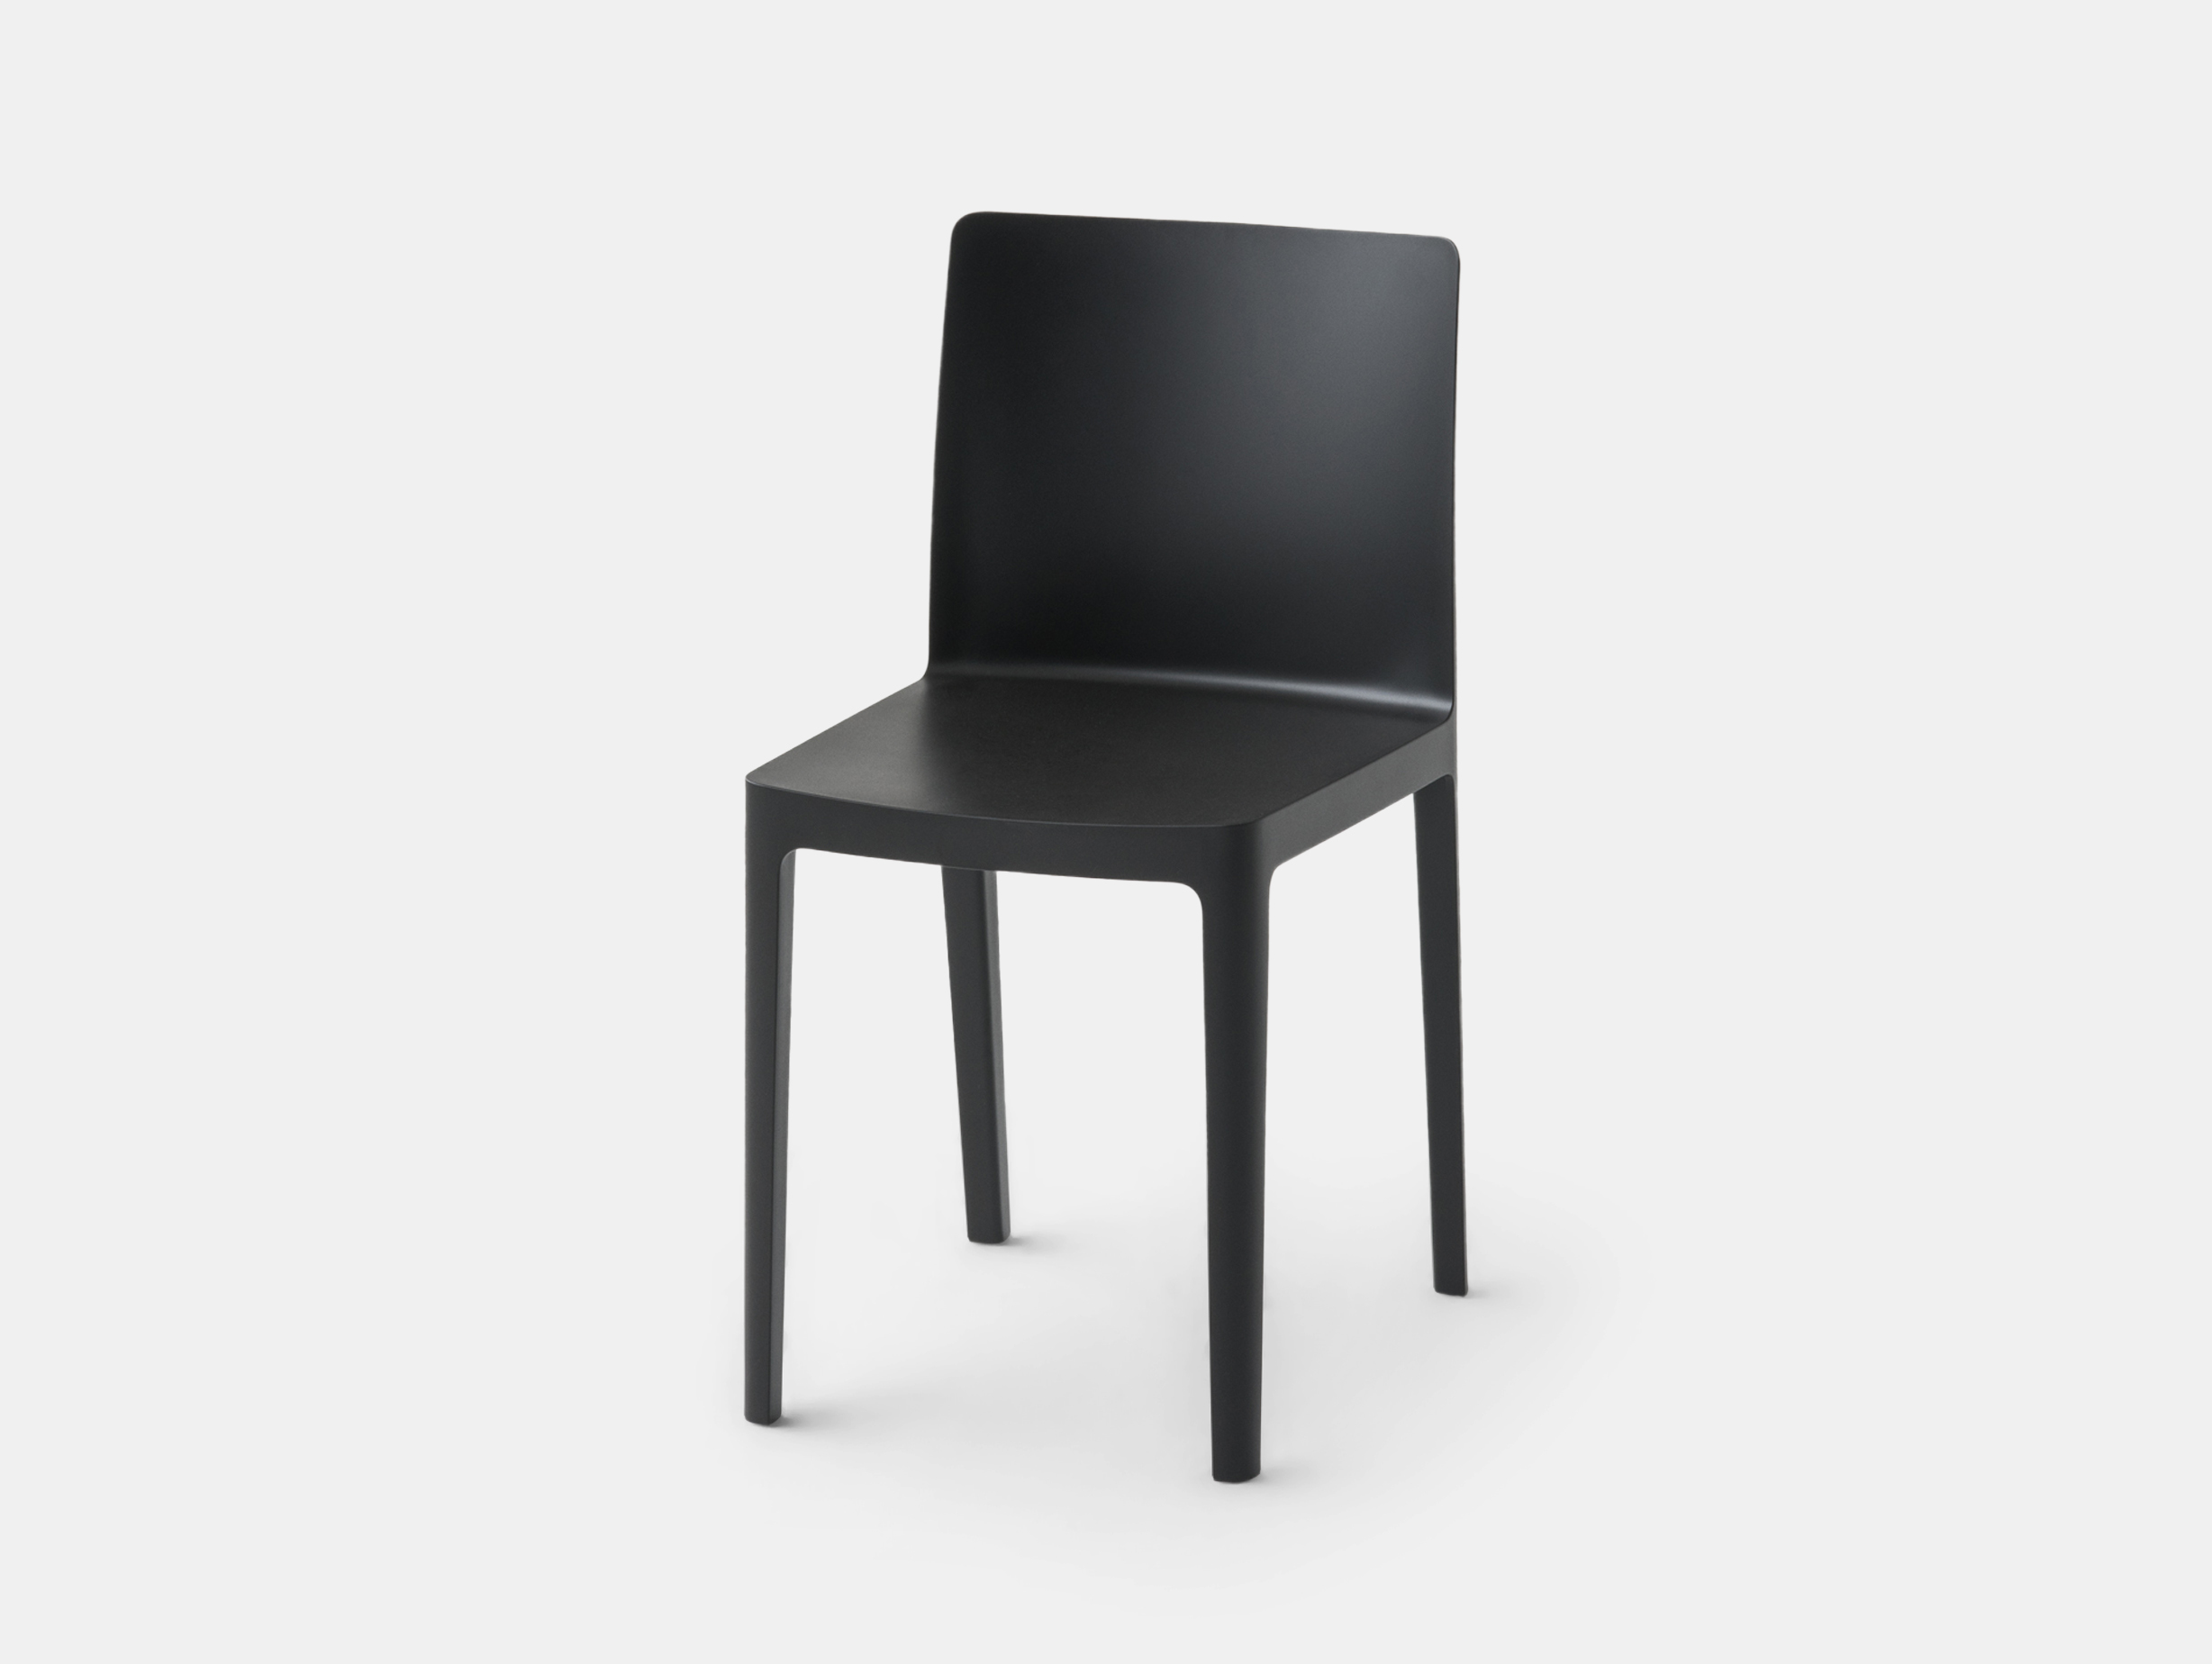 Elementaire Side Chair image 1